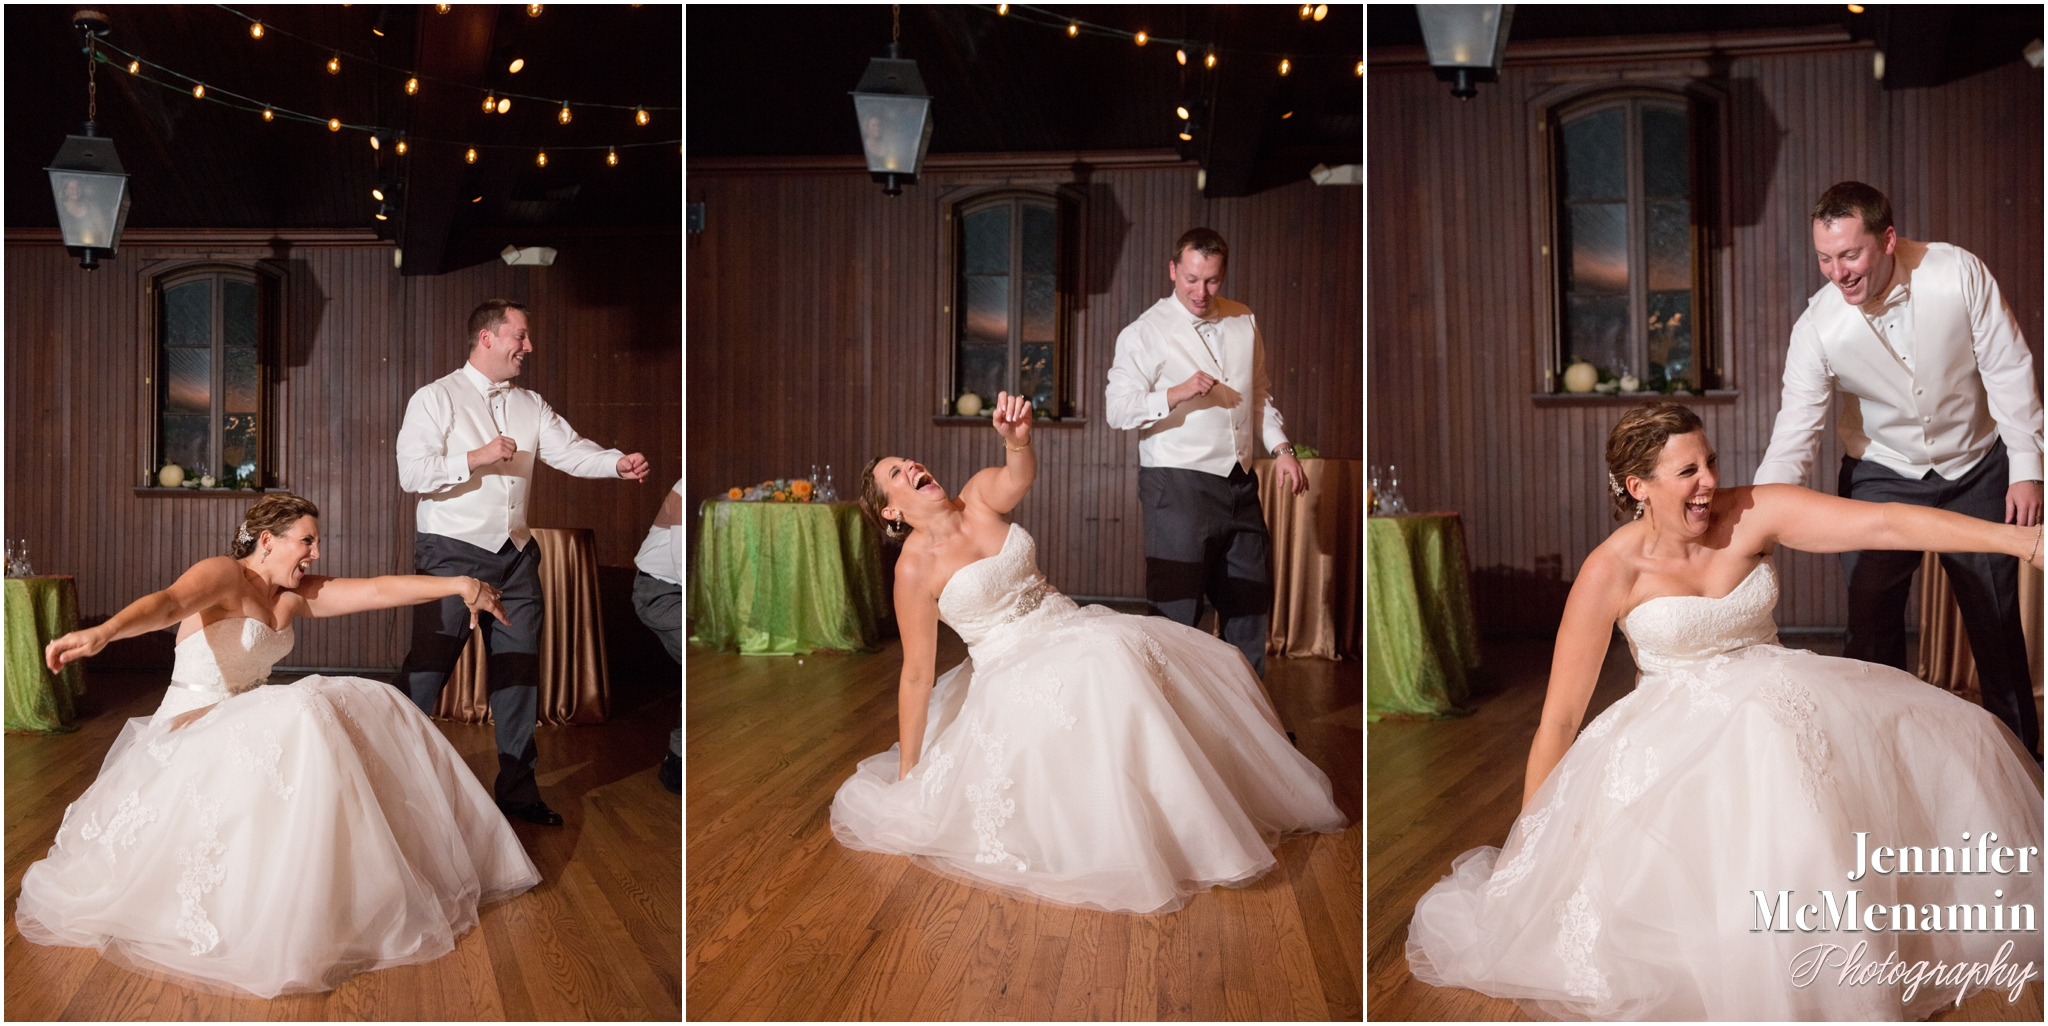 098-HenningMiller_03569-0808_JenniferMcMenaminPhotography_Evergreen-Museum-And-Carriage-House_Evergreen-wedding_Baltimore-wedding-photographer_Baltimore-wedding-photography